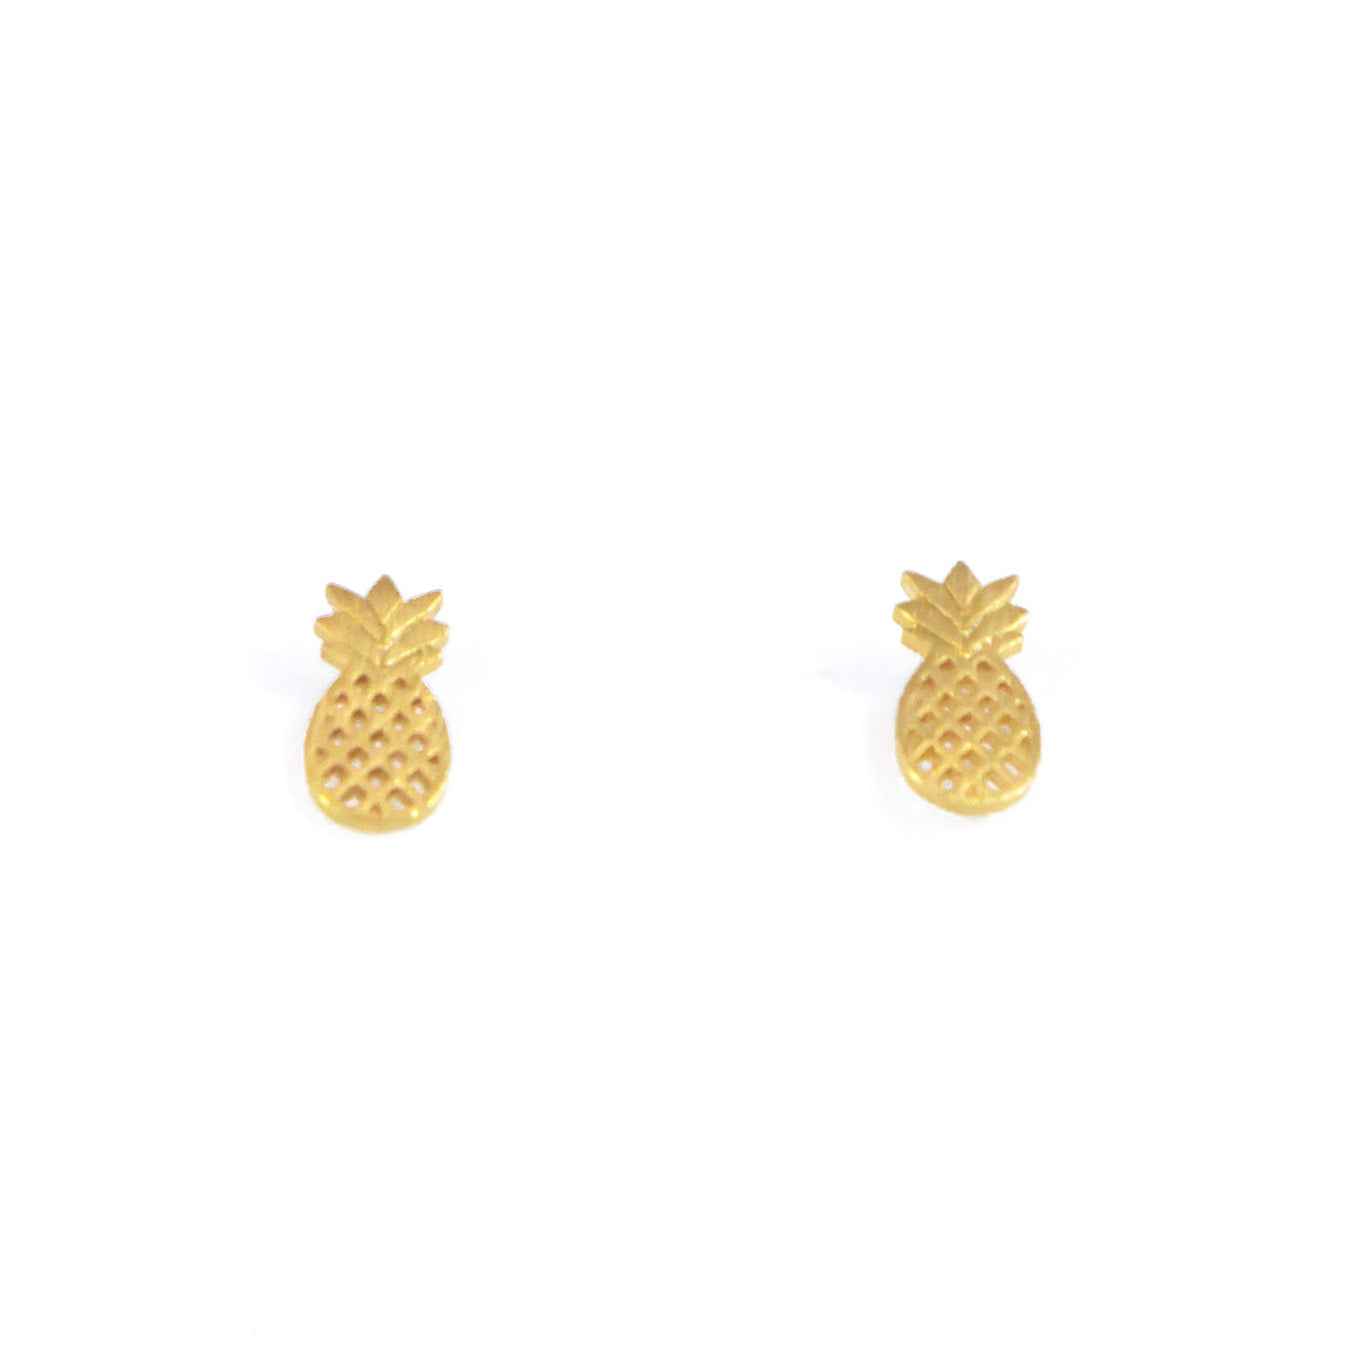 sterling dipped open pineapple gold earrings silver dogeared stud studs